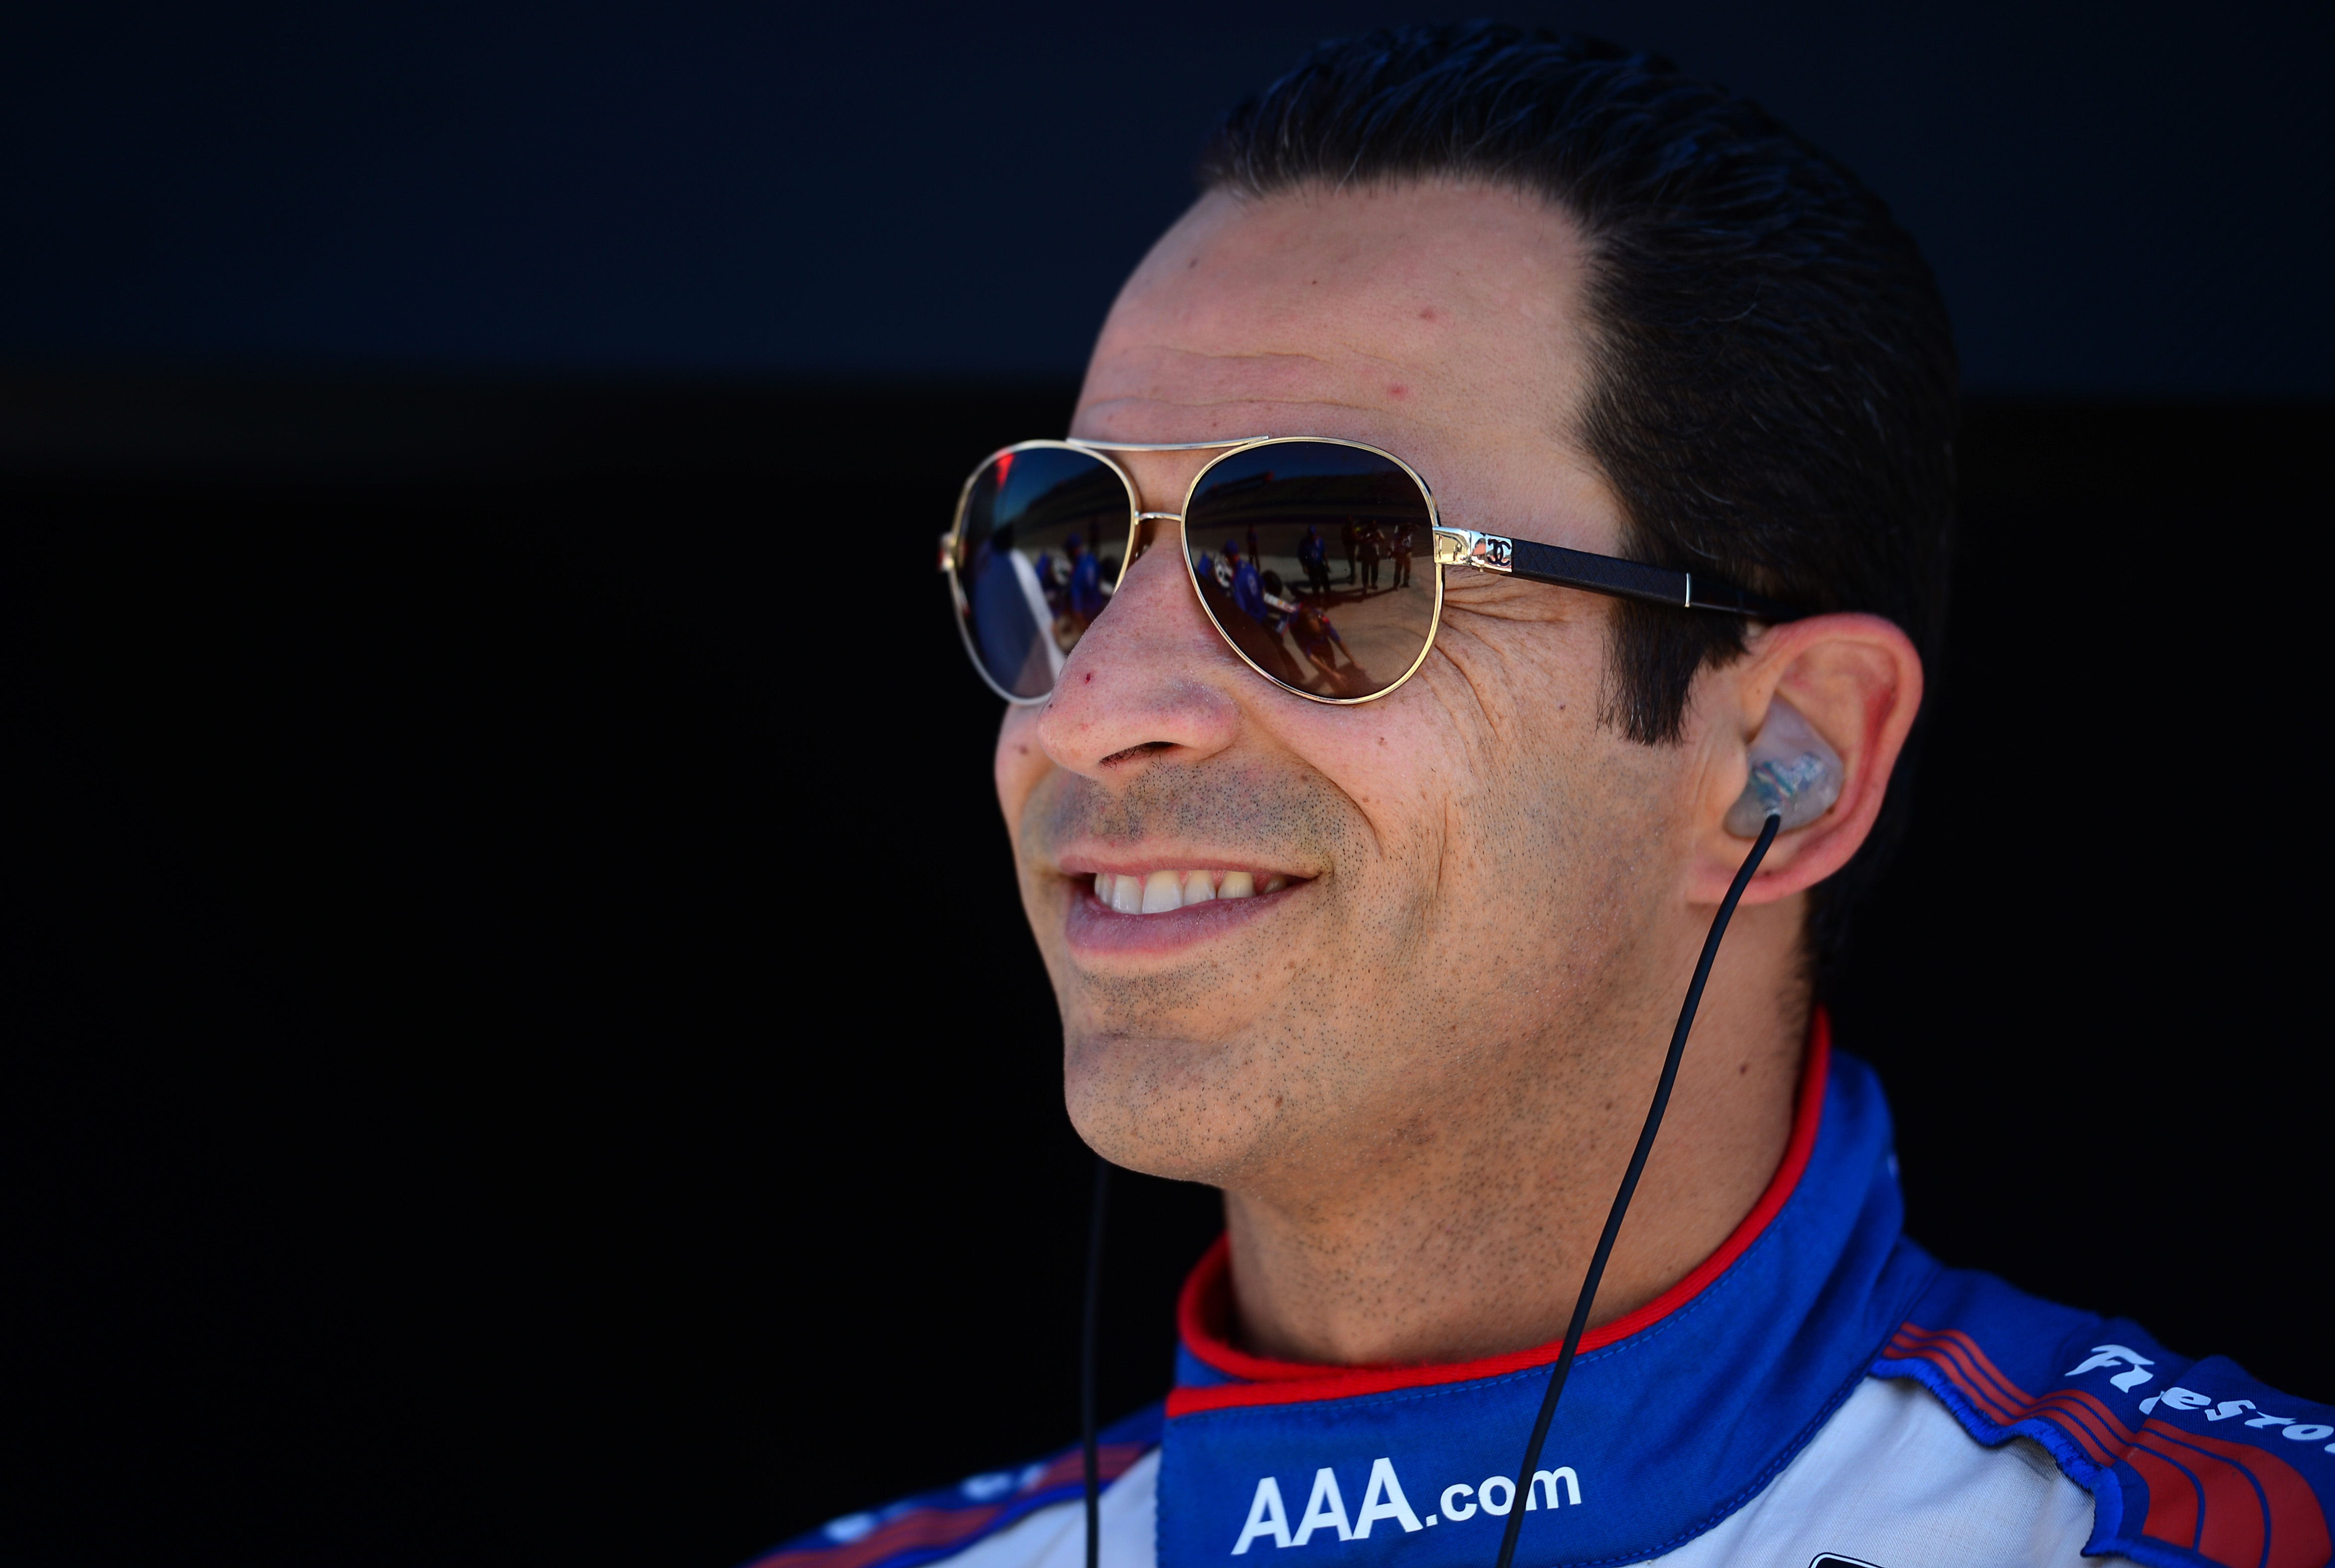 Helio Castroneves of Brazil driver of the #3 Team Penske Dallara Chevrolet  during practice  at the Auto Club Speedway on August 29, 2014 in Fontana, California.